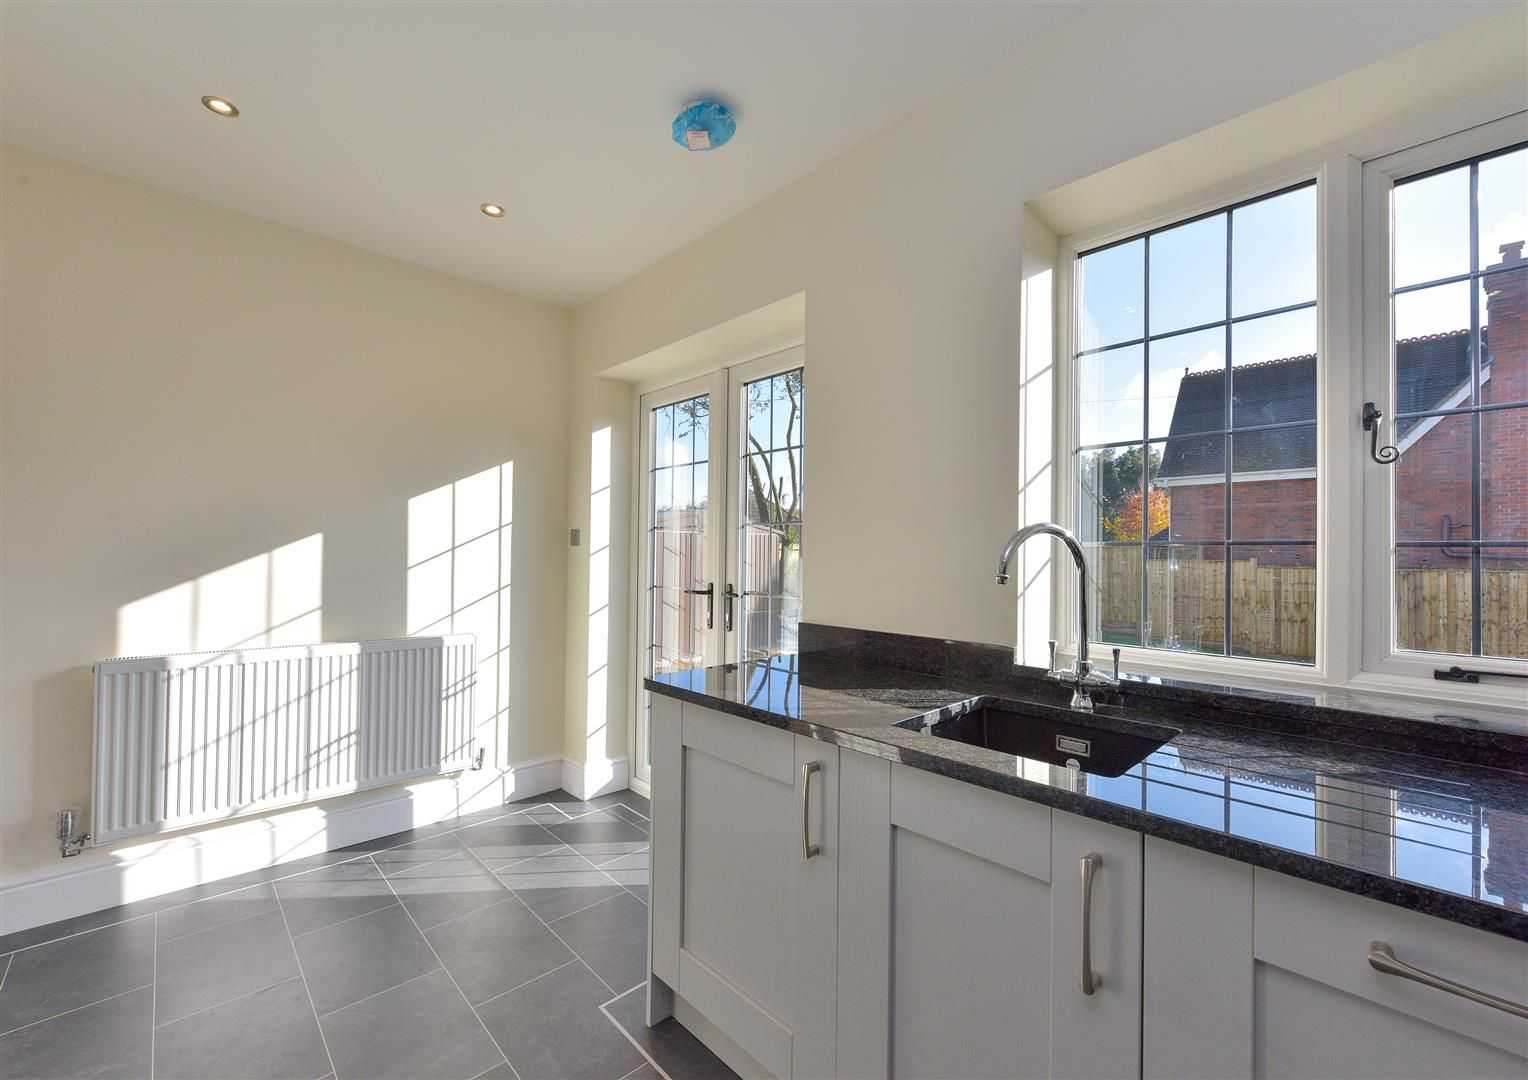 4 bed town-house for sale in Pedmore  - Property Image 5